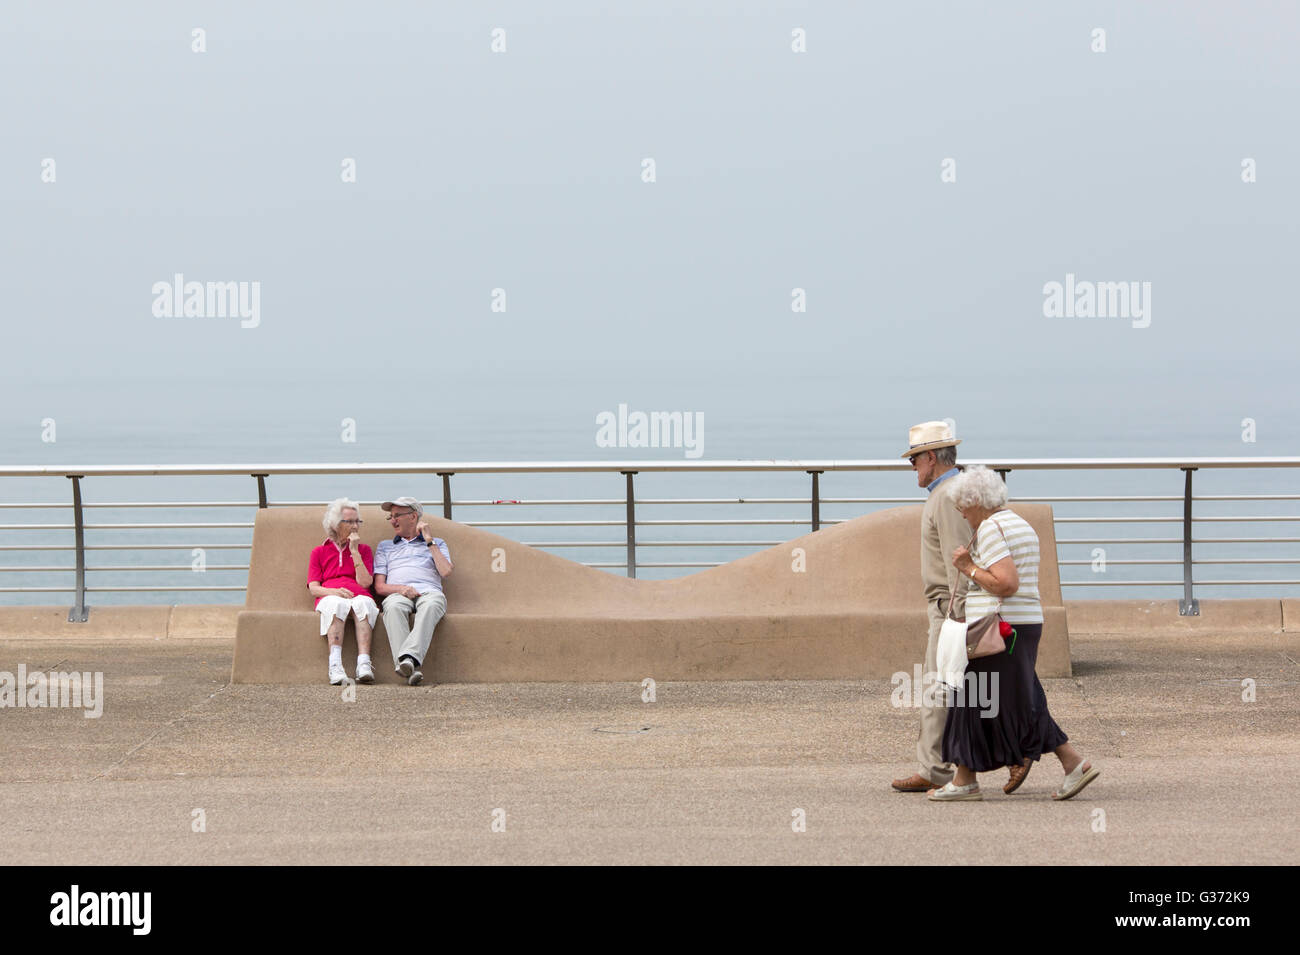 Warm weather at Blackpool , England.Enjoying the warm weather on the promenade.An elderly couple takes a stroll - Stock Image